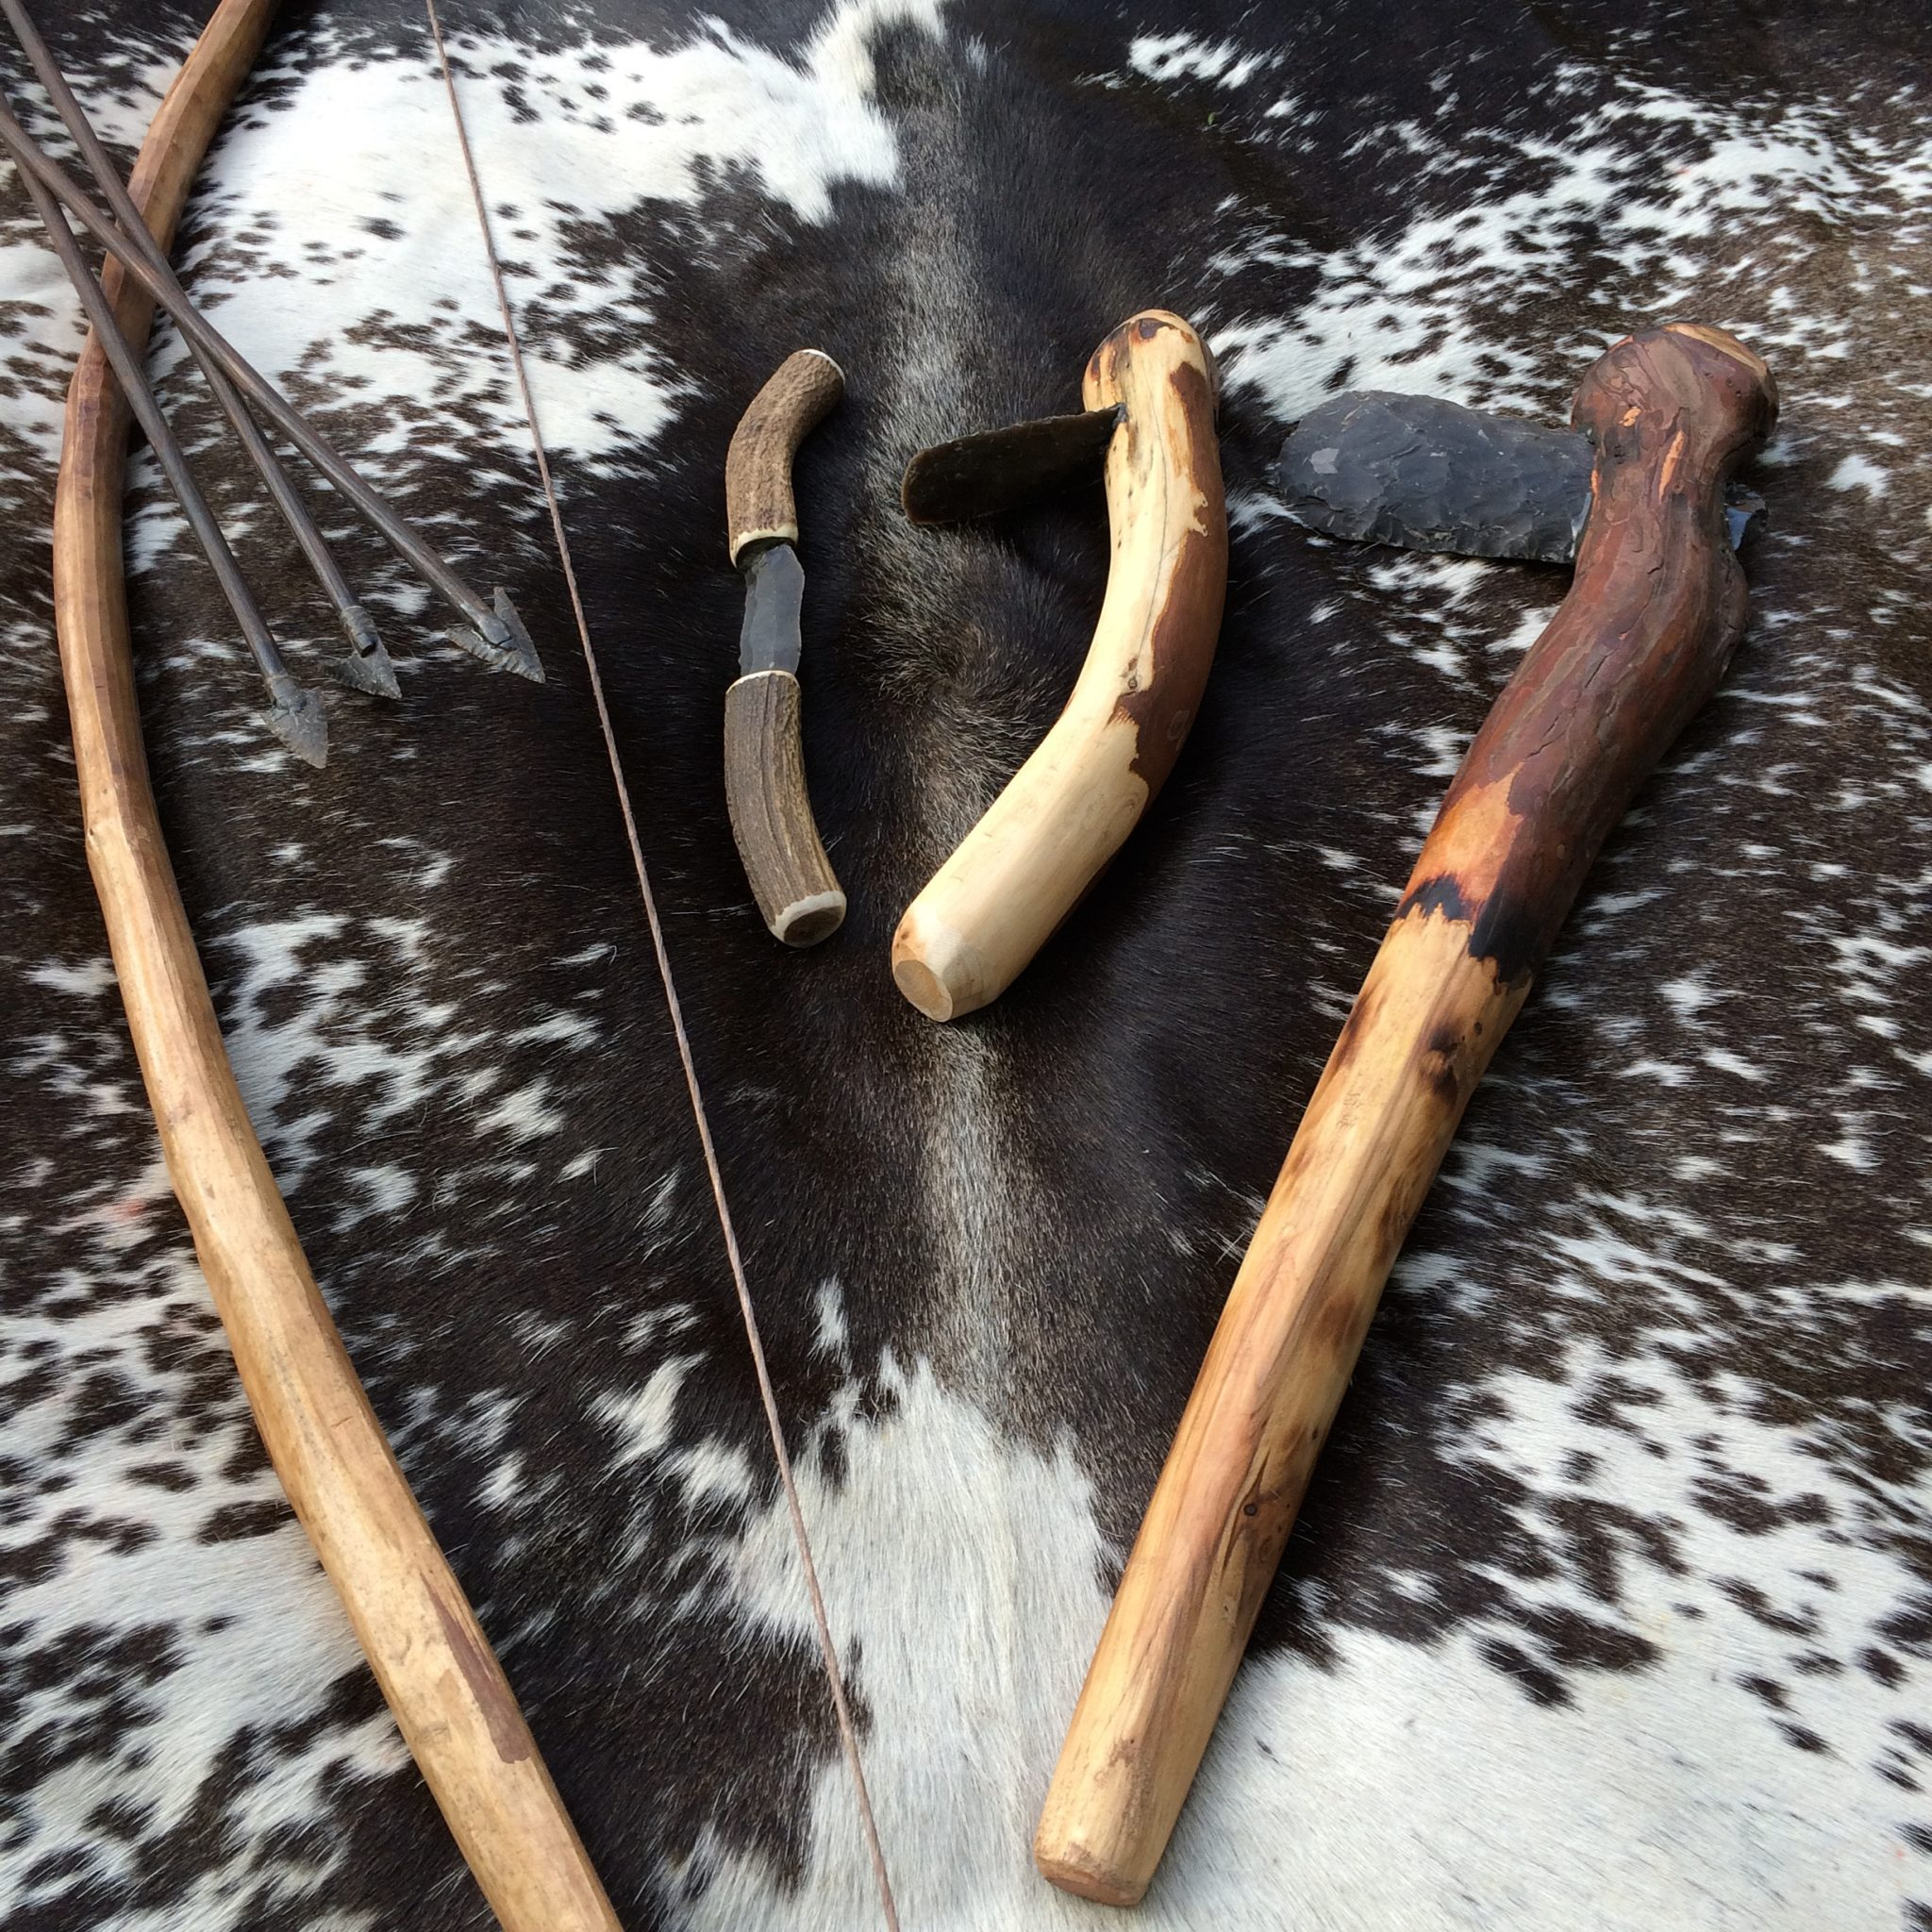 Neolithic Yew Bow with the Tools to Make It, Axe Adze and Draw Knife